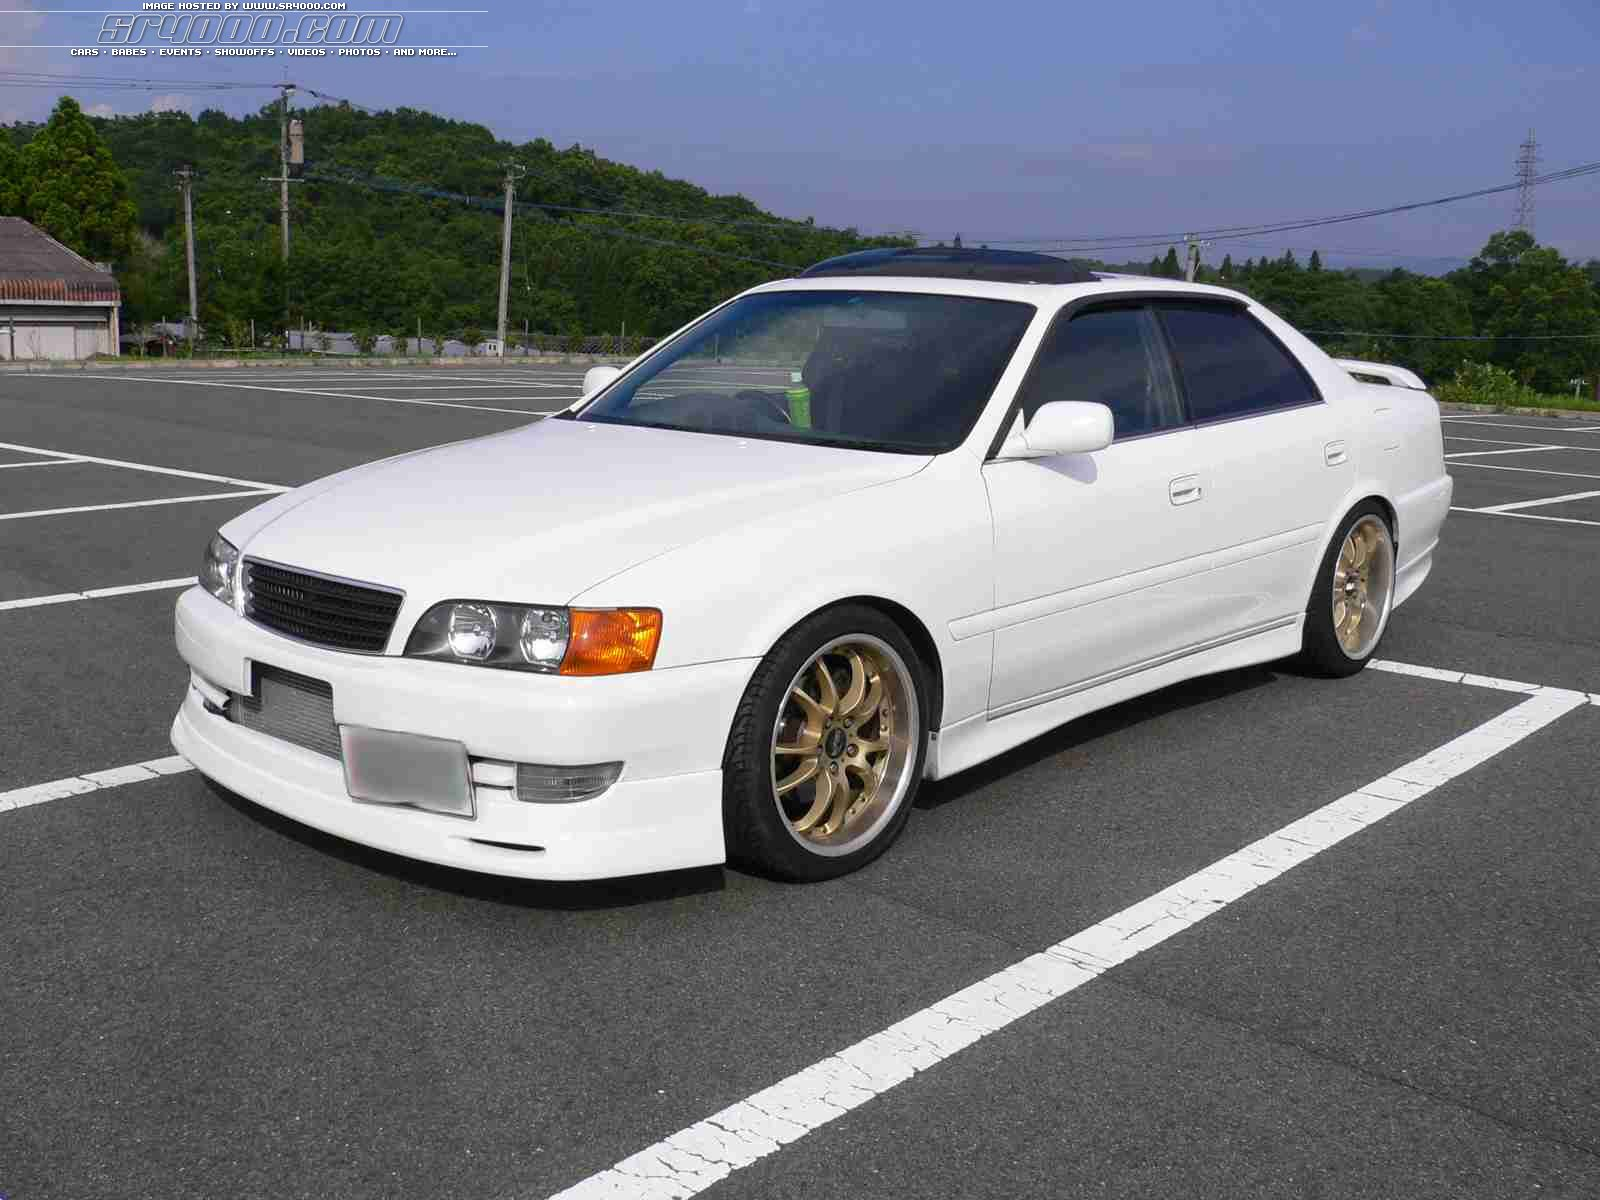 Toyota Chaser Tourer V: Photos, Reviews, News, Specs, Buy car